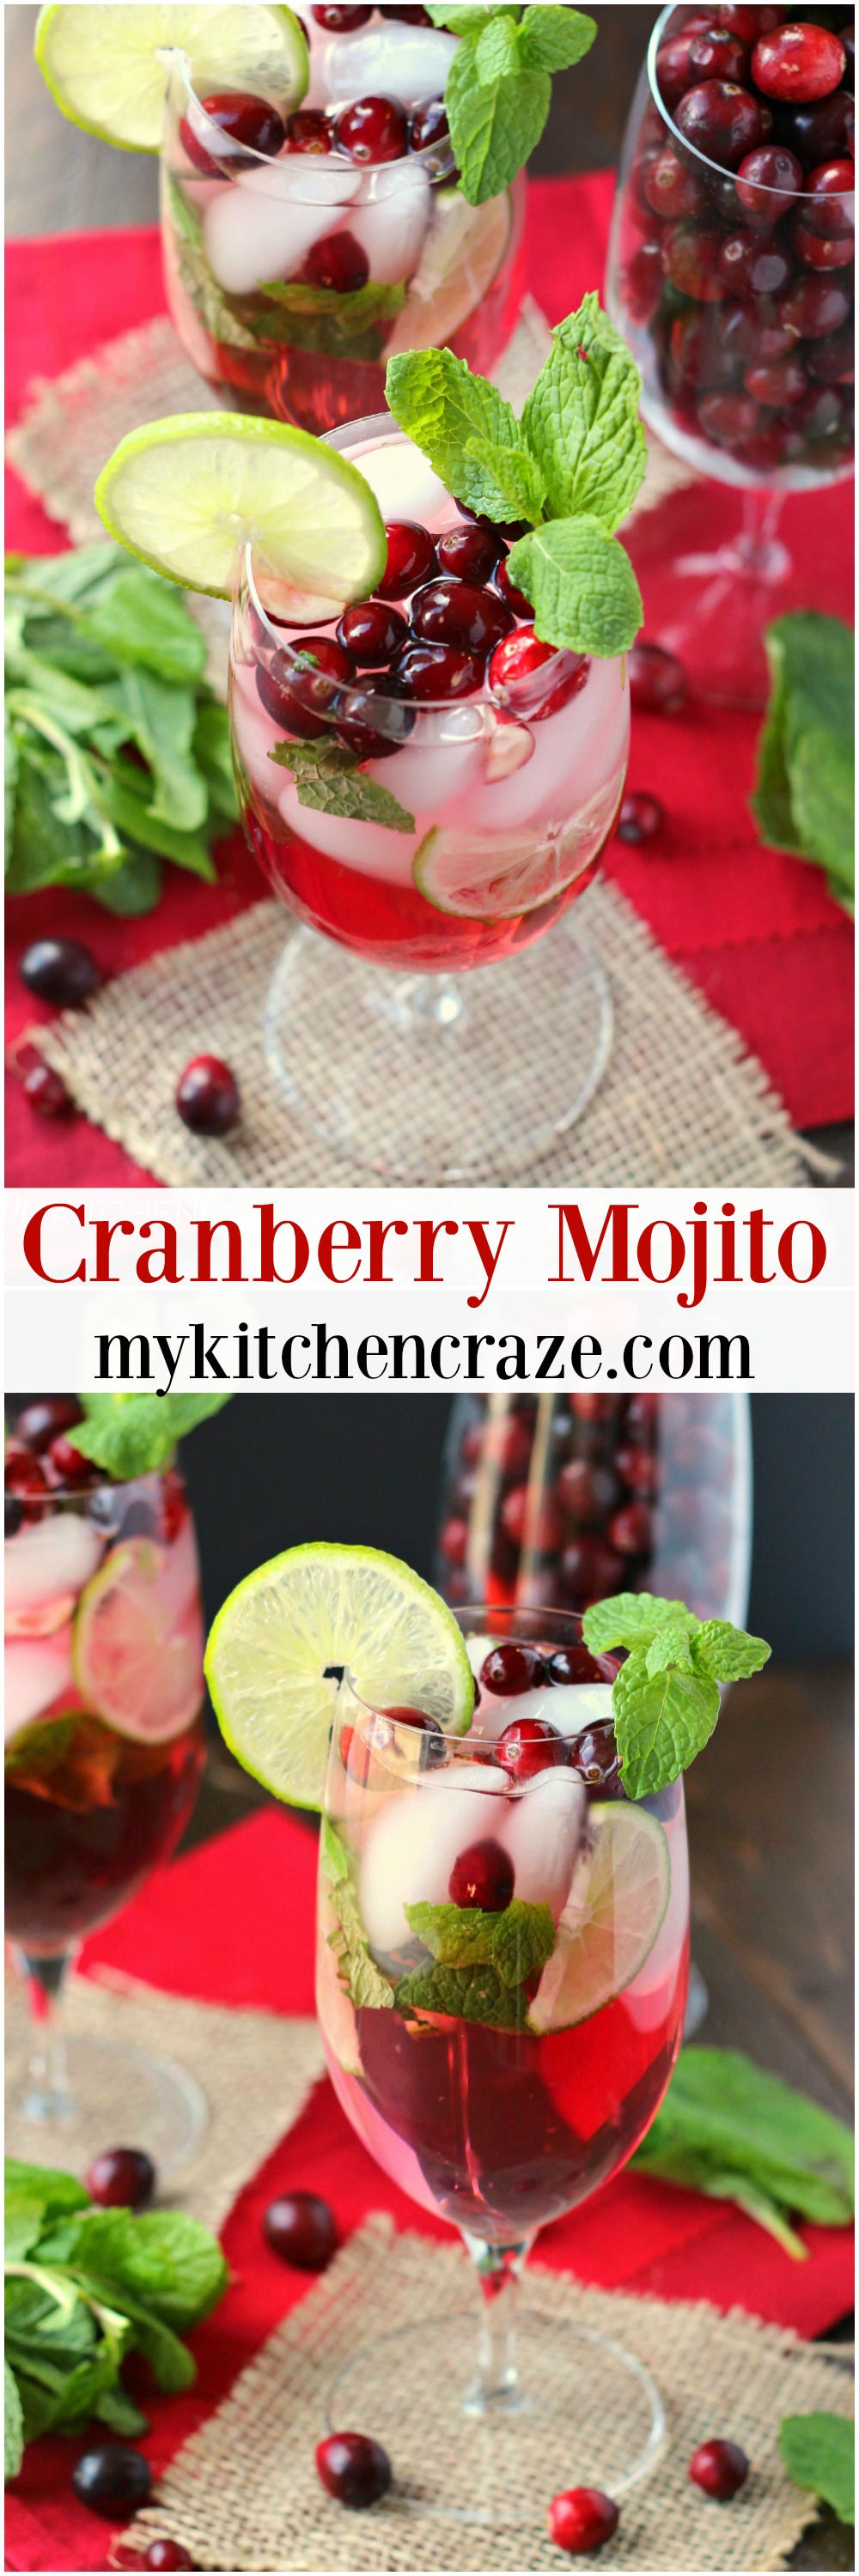 Cranberry Mojito ~ mykitchencraze.com ~ A refreshing and delicious drink for your holiday parties! #CelebrateThis #ad